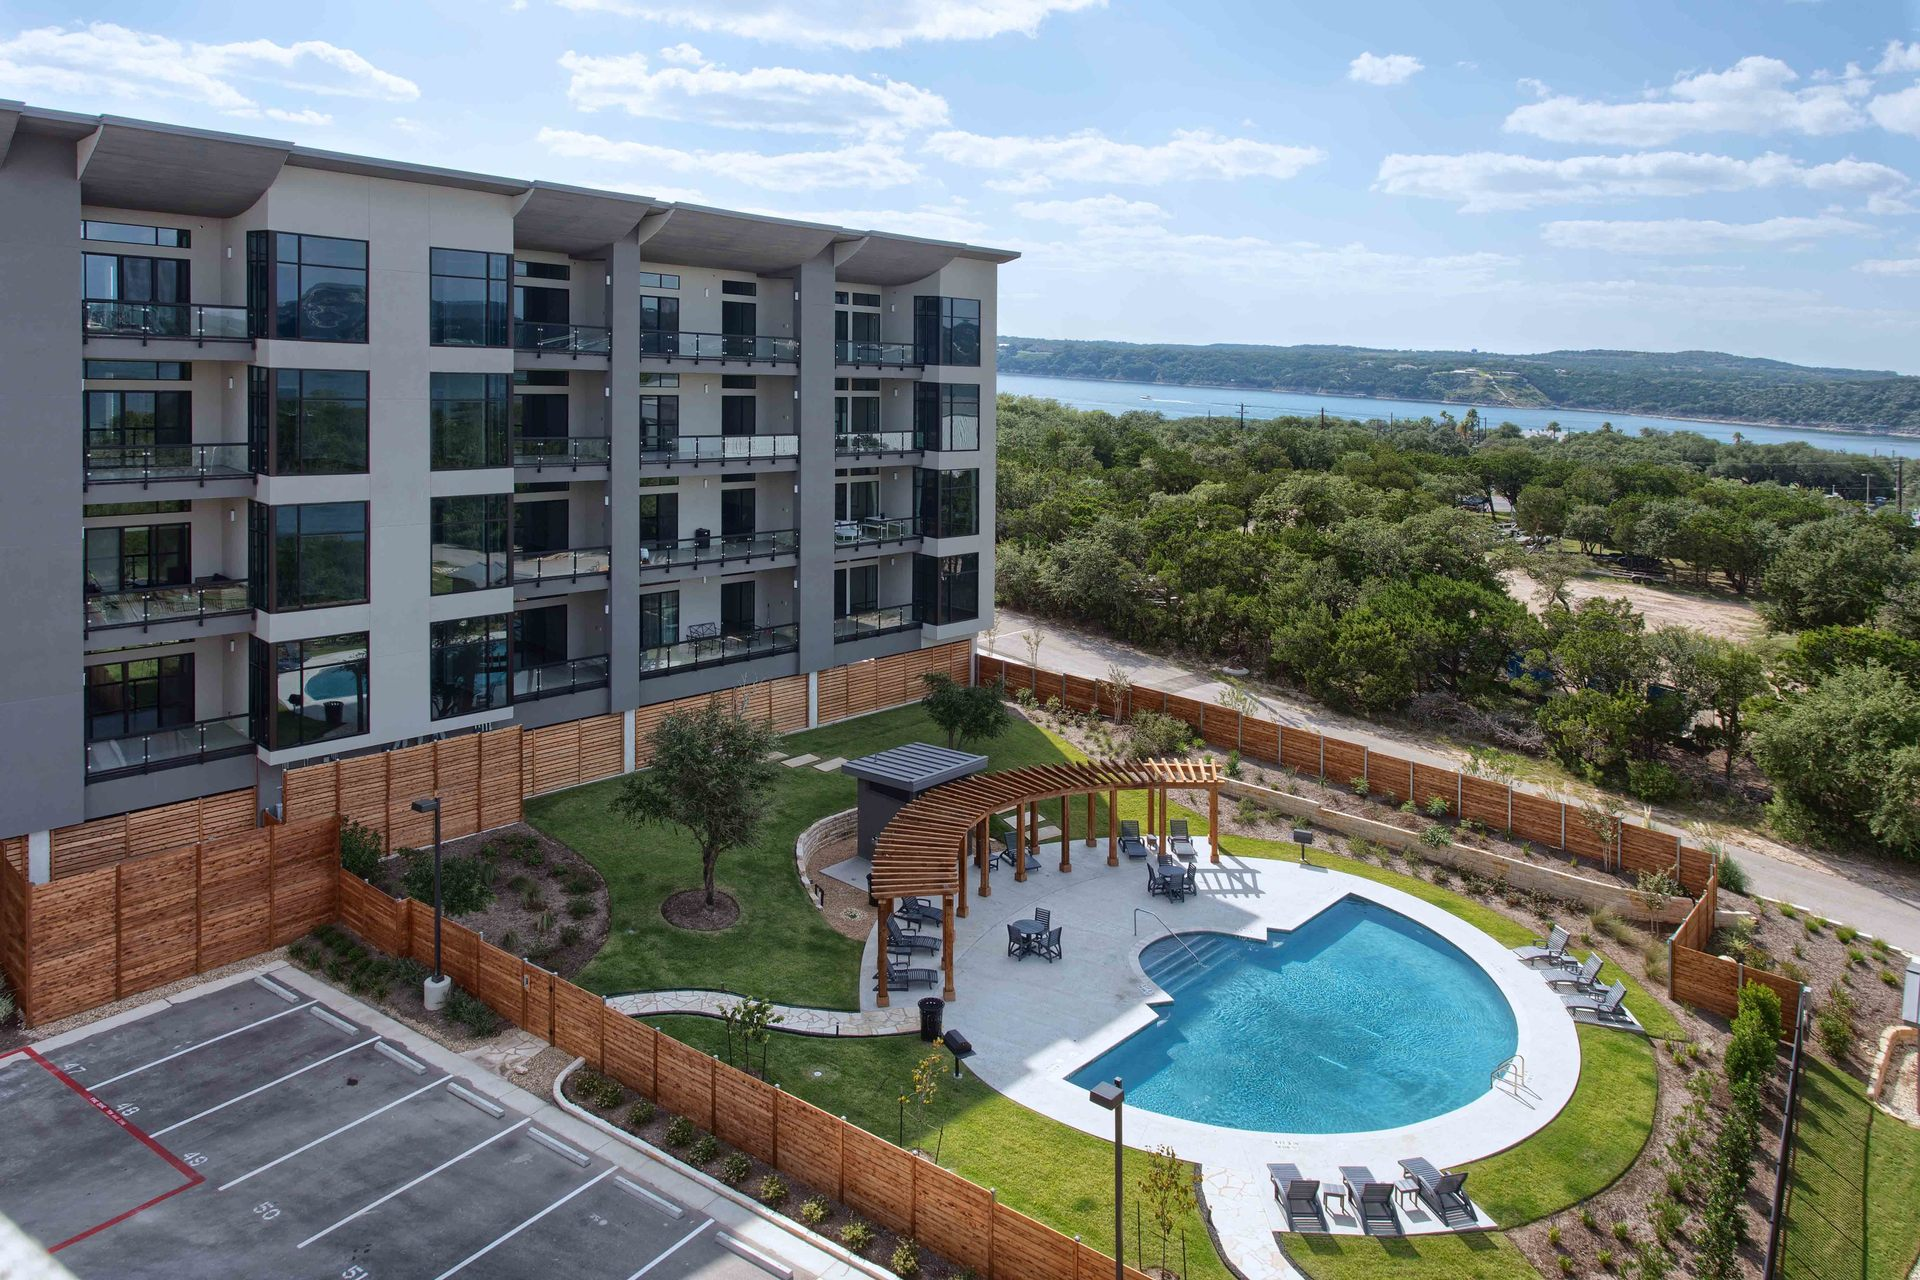 Exterior landscaping of the Waterfall Condos on Lake Travis by Cornerstone Architects.